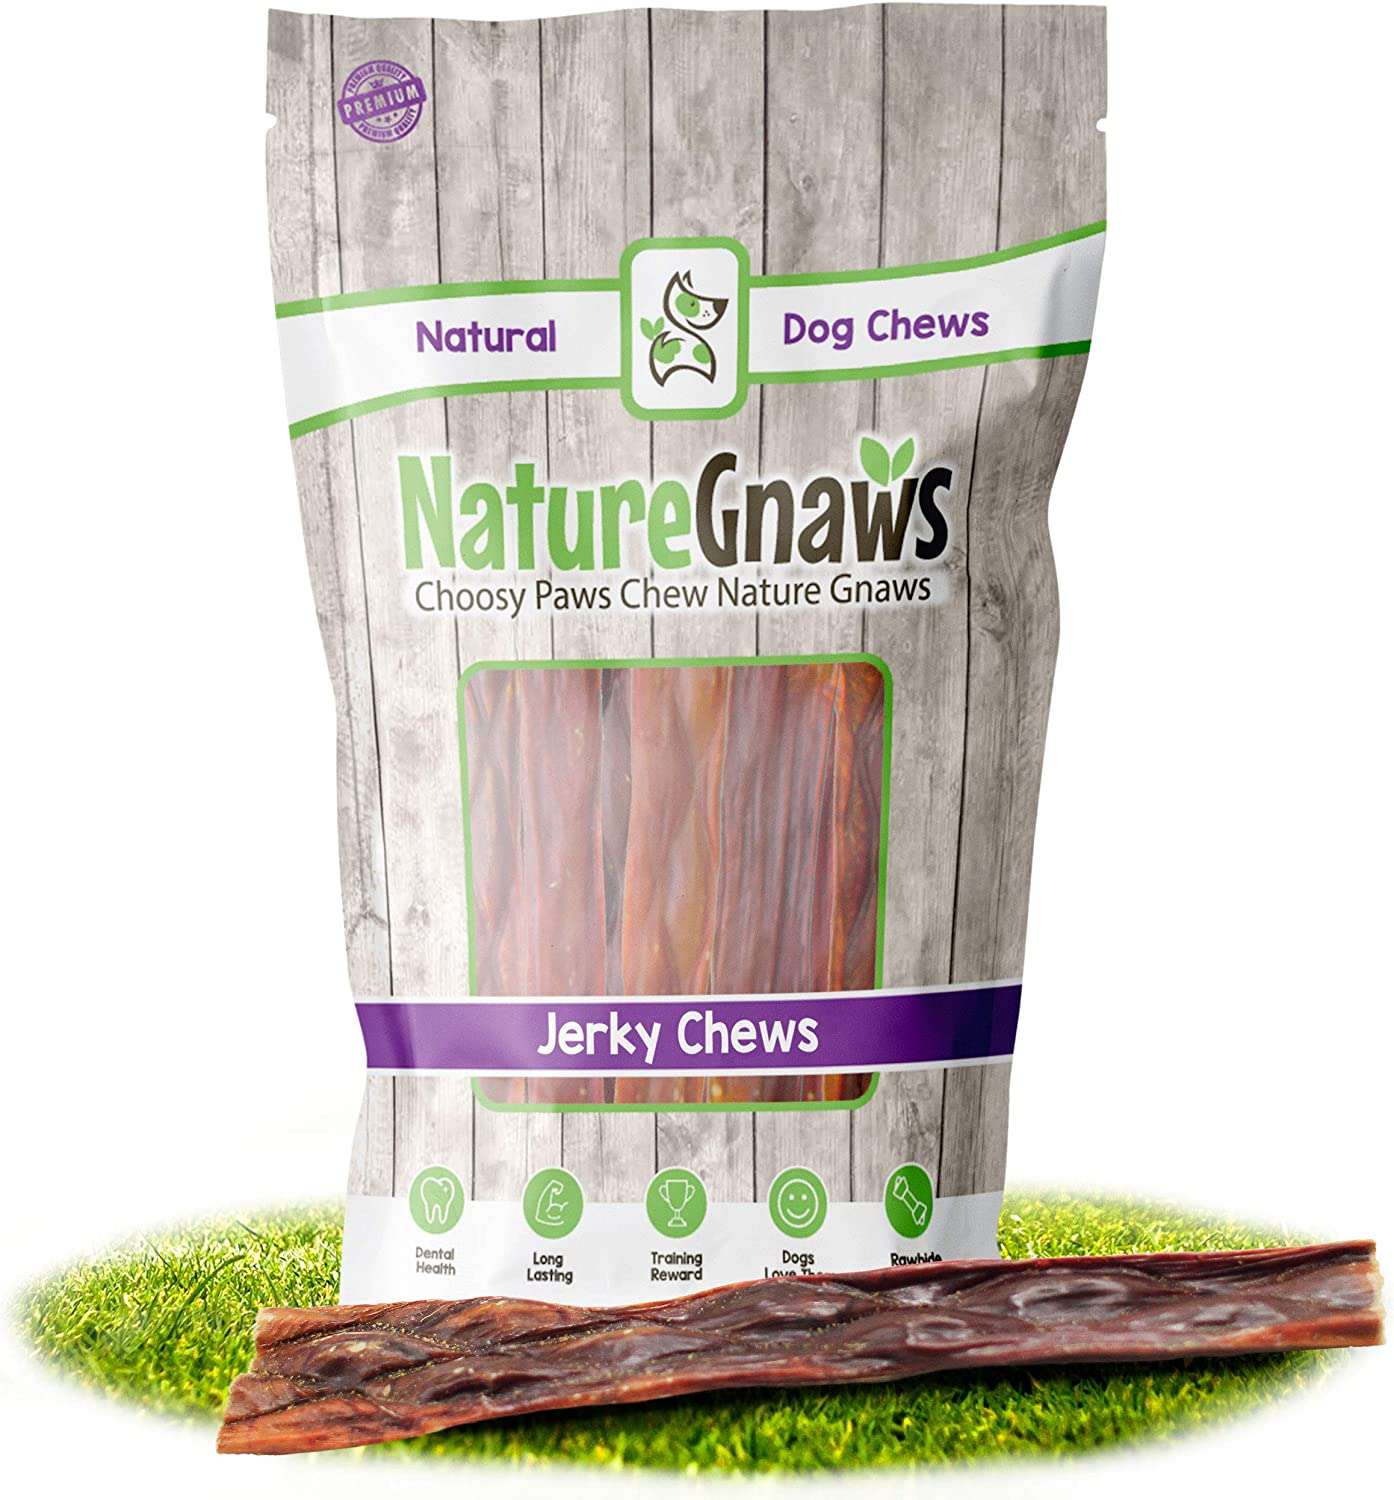 Nature Gnaws Beef Jerky Chews for Large Dogs - Premium Natural Beef Gullet Sticks - Simple Single Ingredient Tasty Dog Chew Treats - Rawhide Free - 9-10 Inch